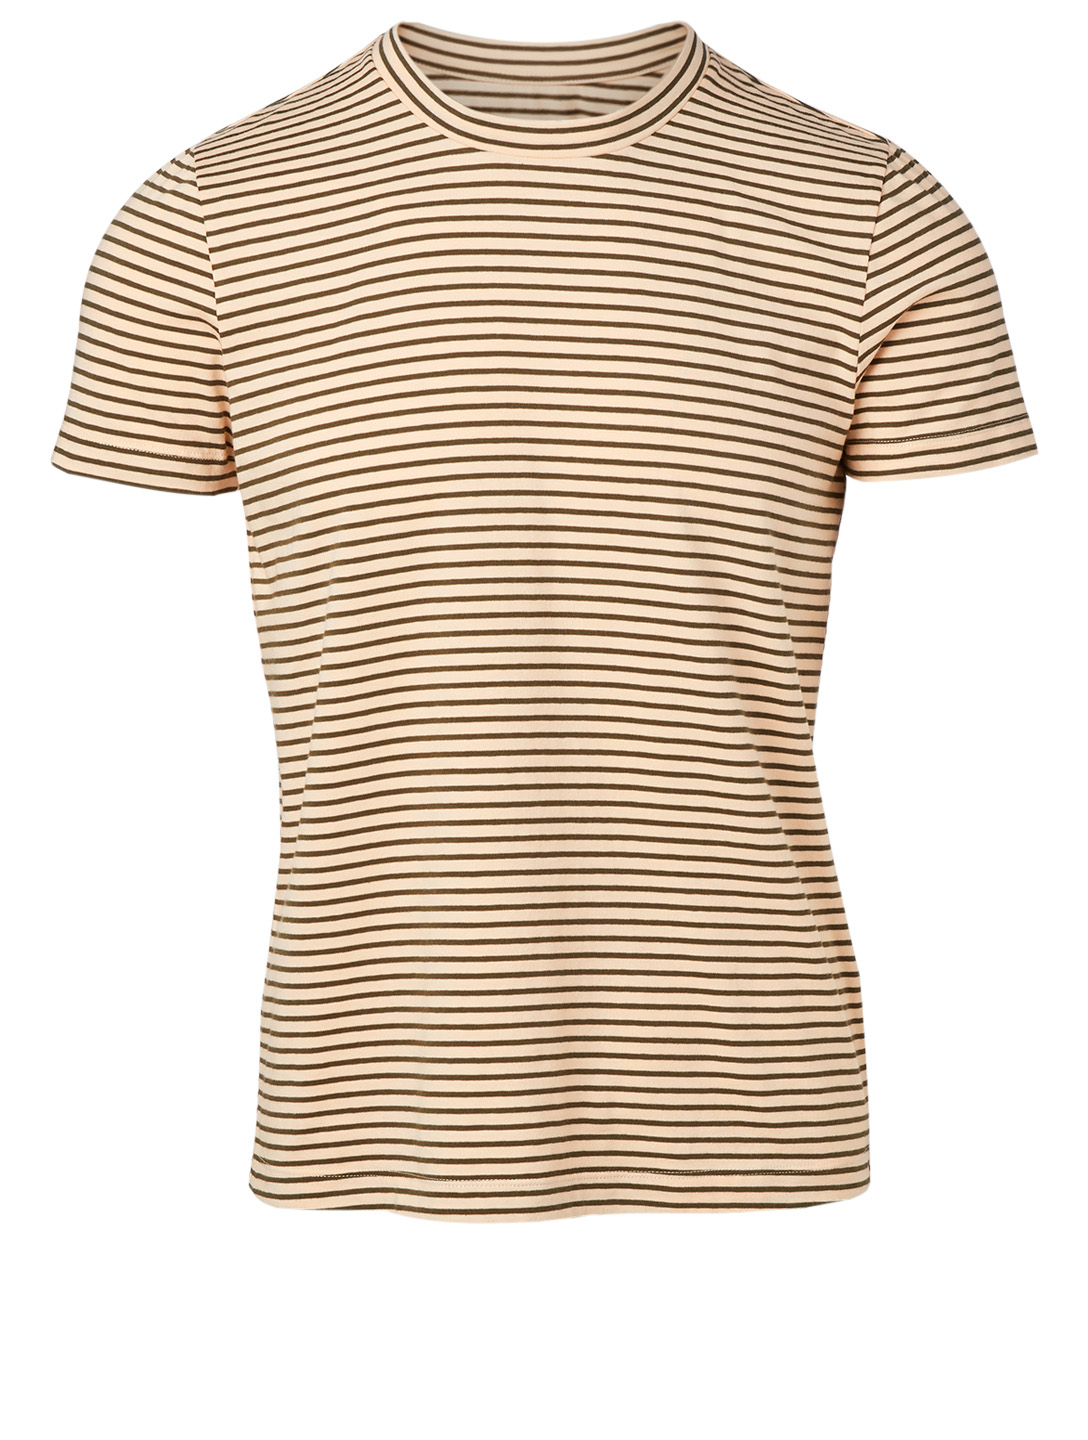 MM6 MAISON MARGIELA Cotton Stretch T-Shirt In Striped Print Women's Beige